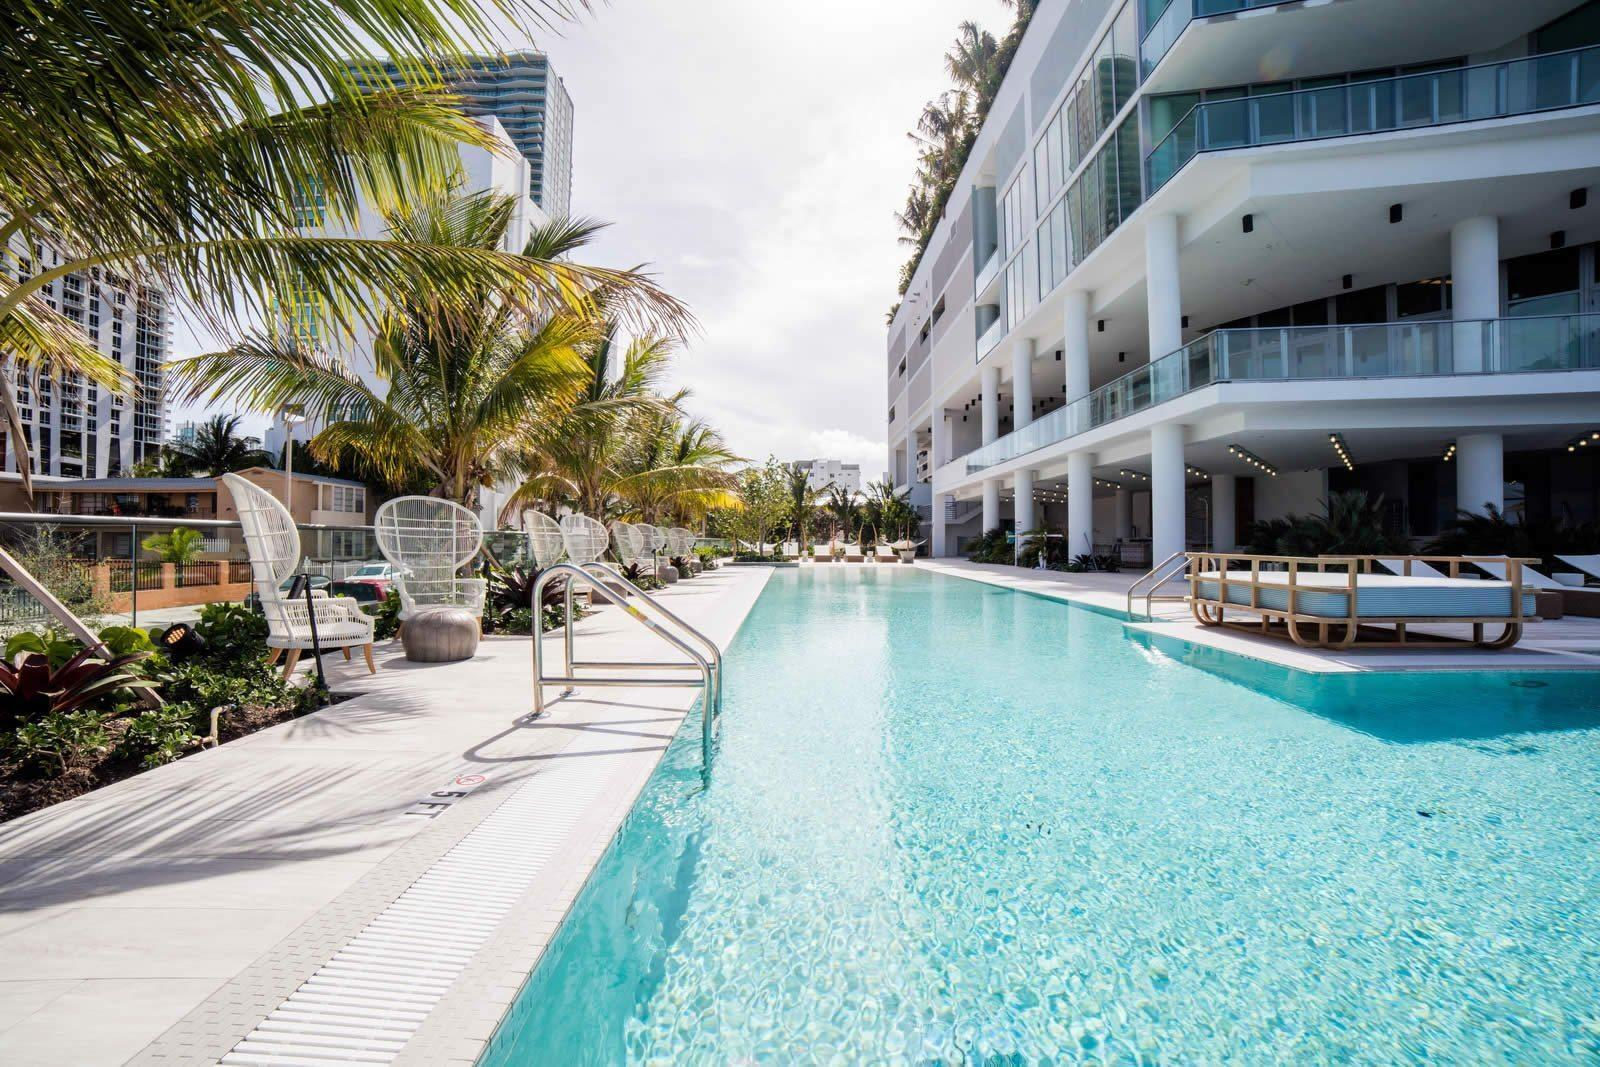 Apartment for sale in edgewater miami upscale building private elevator sea and city views for Swimming pool construction miami